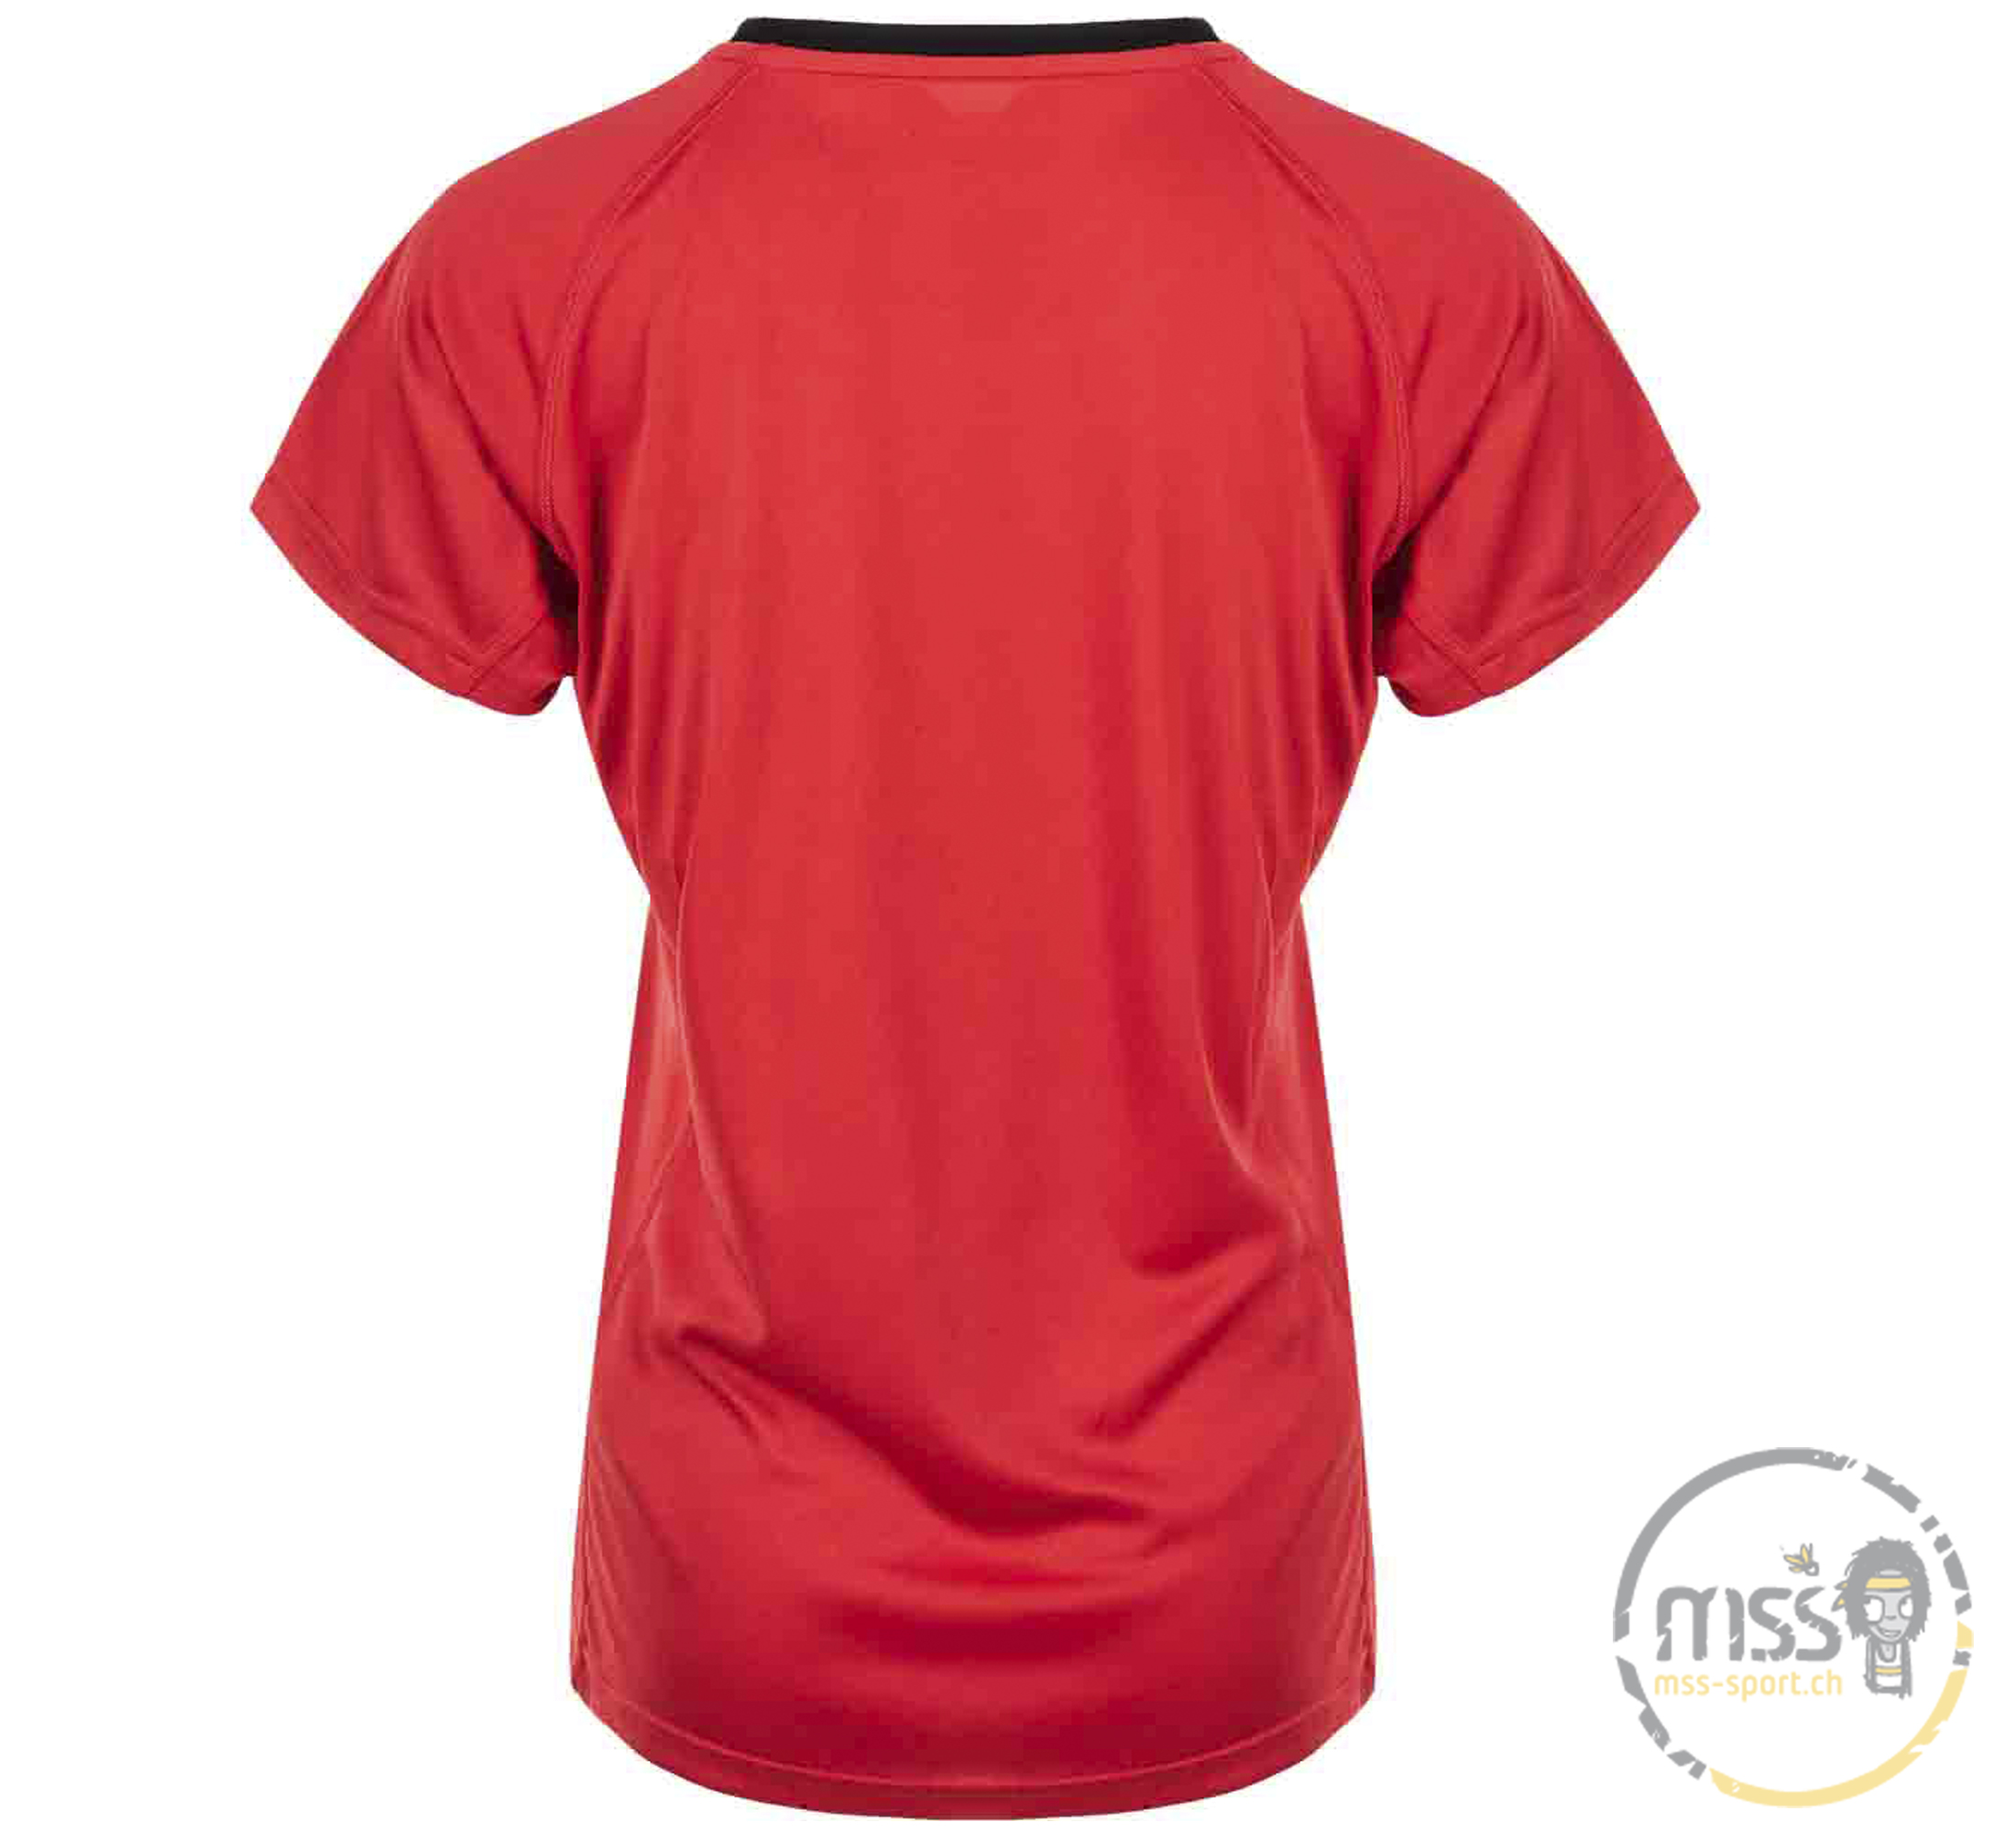 Forza Shirt Blingley Tee chinese red Lady